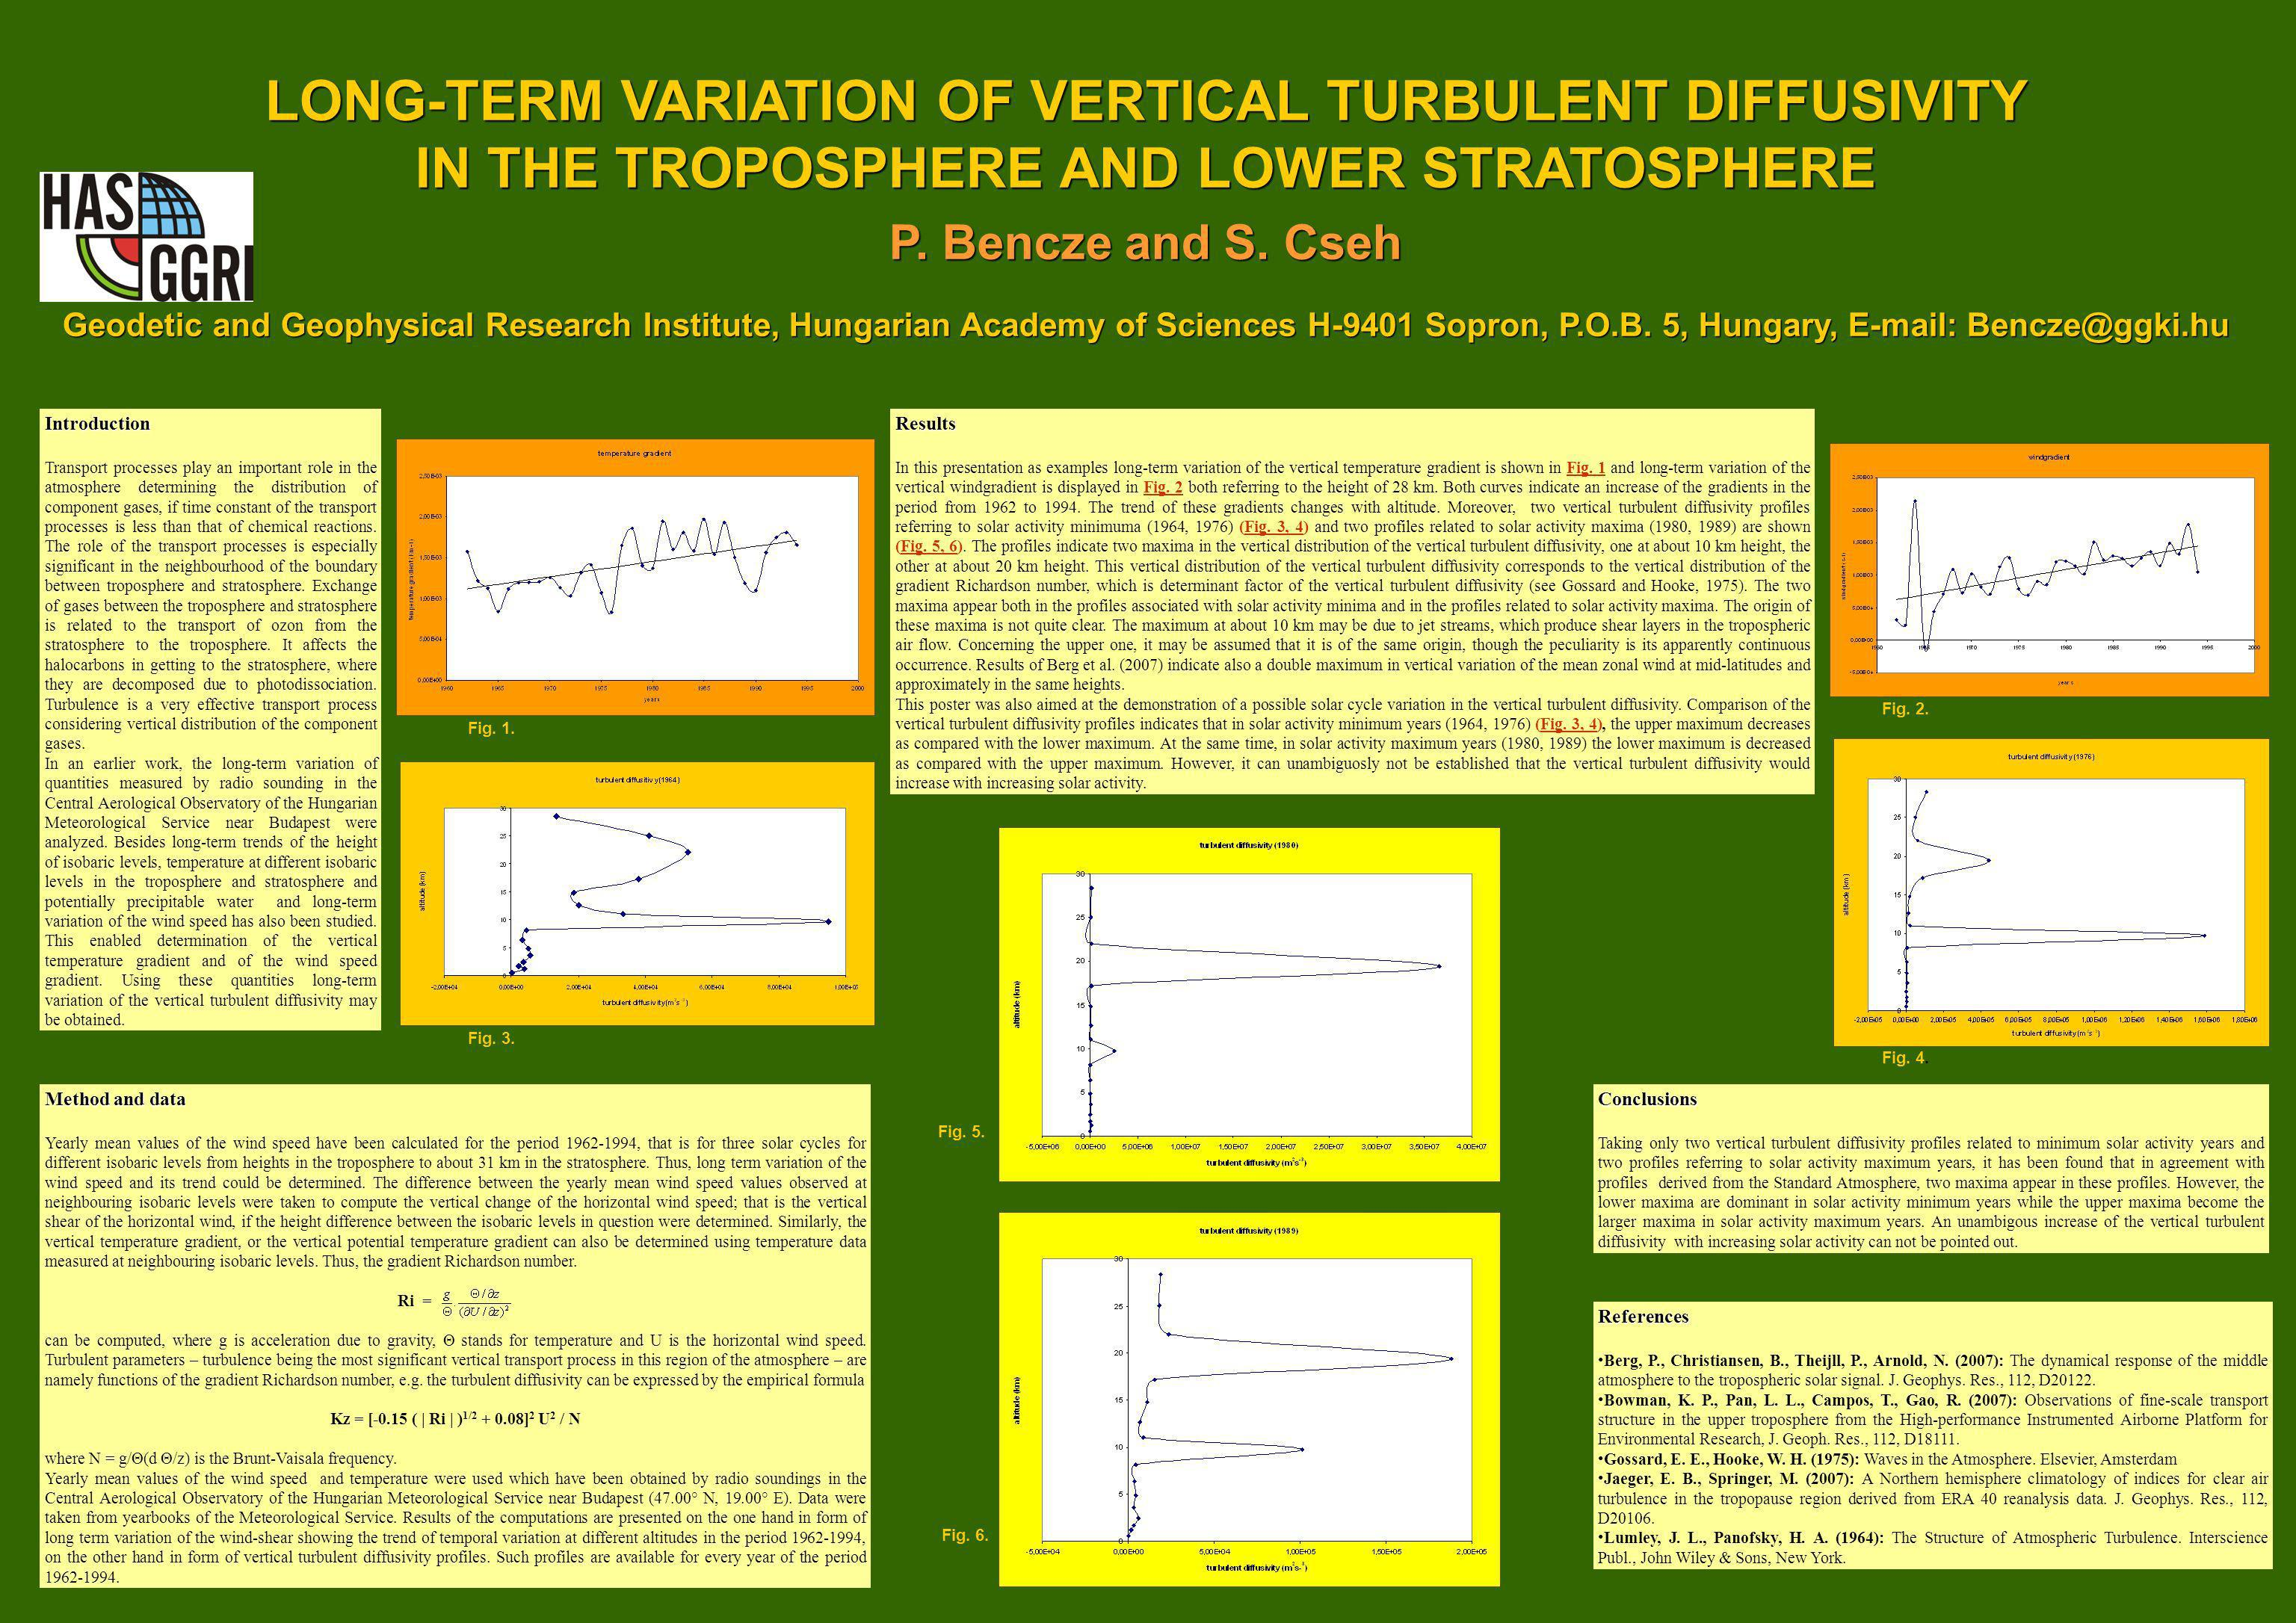 LONG-TERM VARIATION OF VERTICAL TURBULENT DIFFUSIVITY IN THE TROPOSPHERE AND LOWER STRATOSPHERE P.